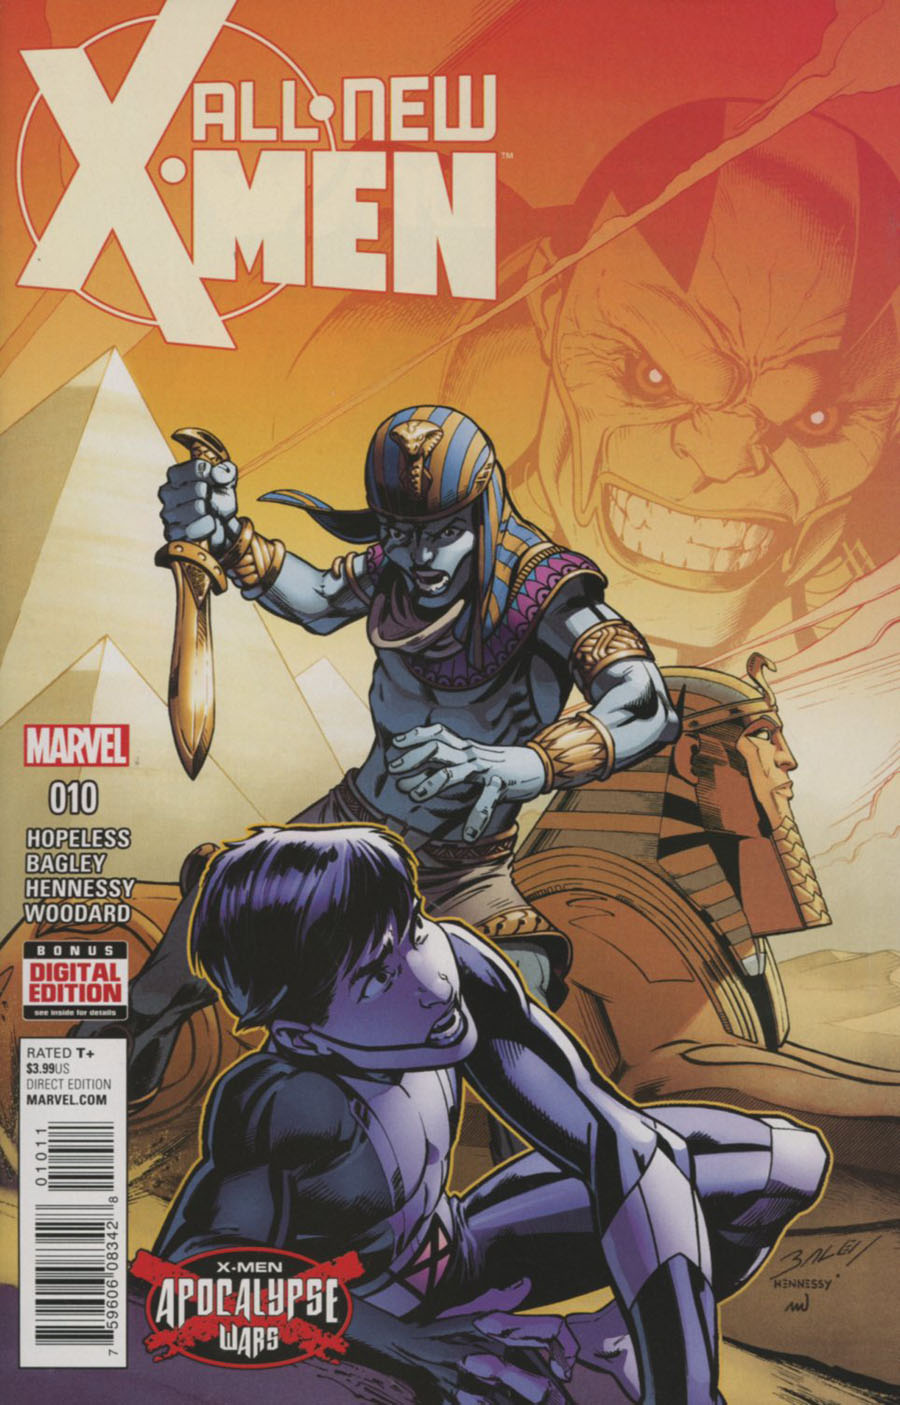 All-New X-Men Vol 2 #10 (X-Men Apocalypse Wars Tie-In)